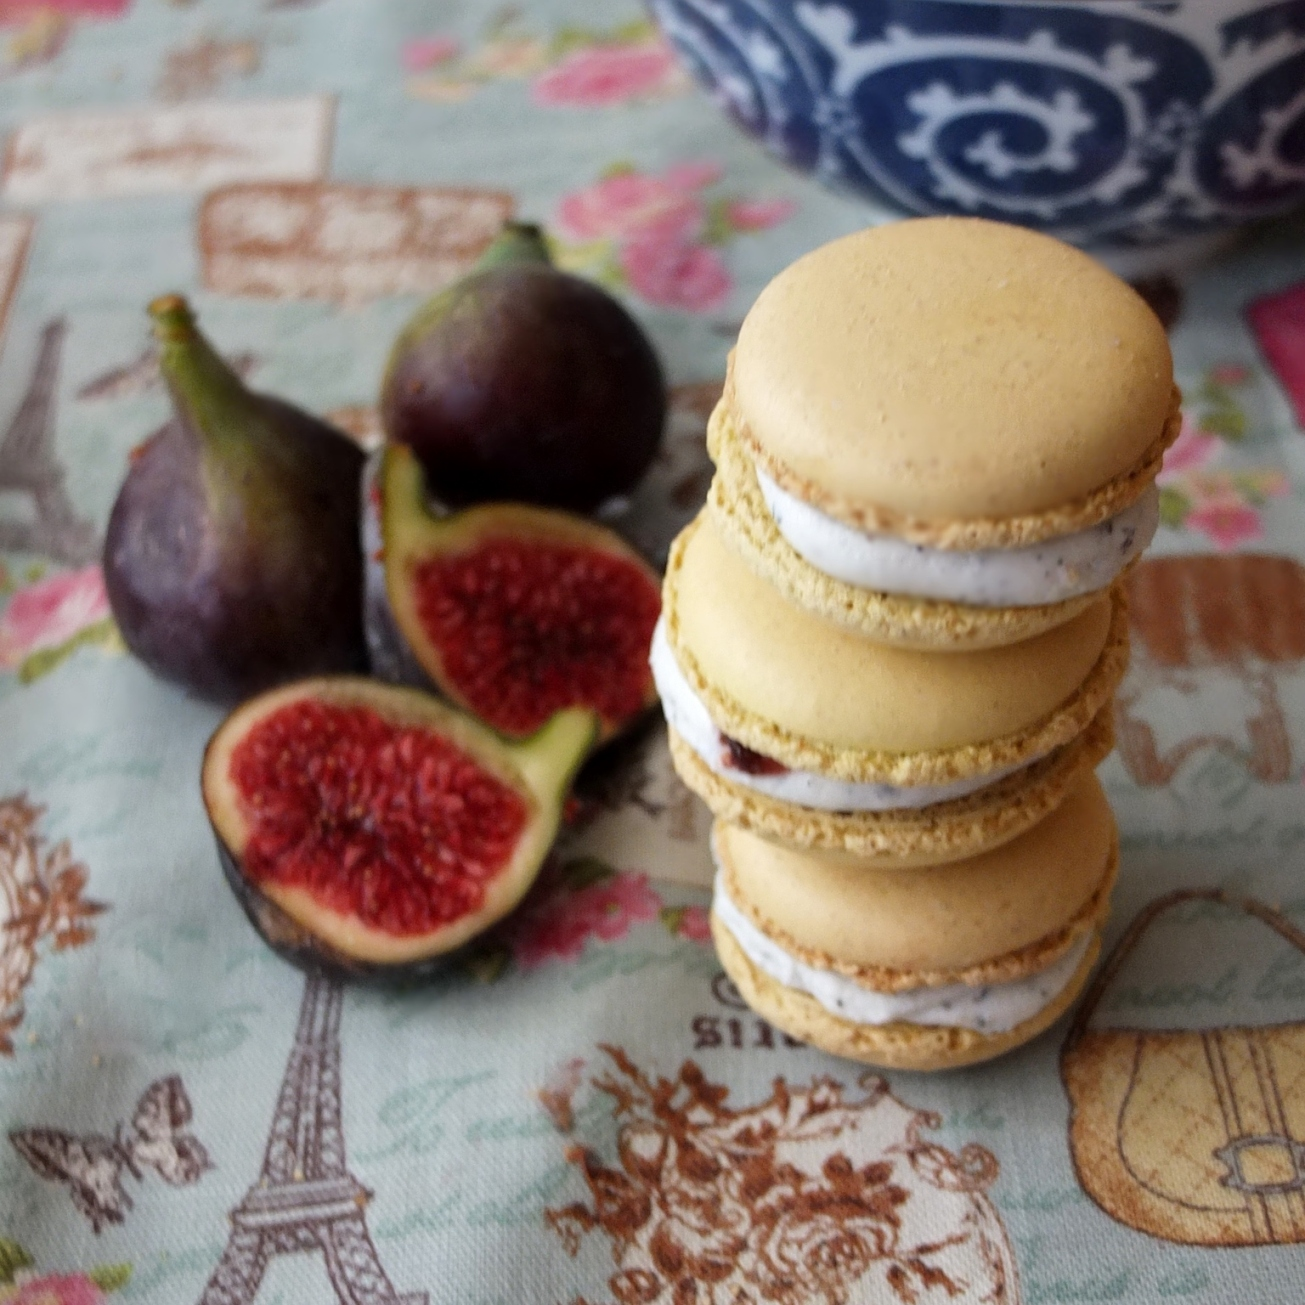 Goats' cheese macarons with fig, walnut and black sesame seeds